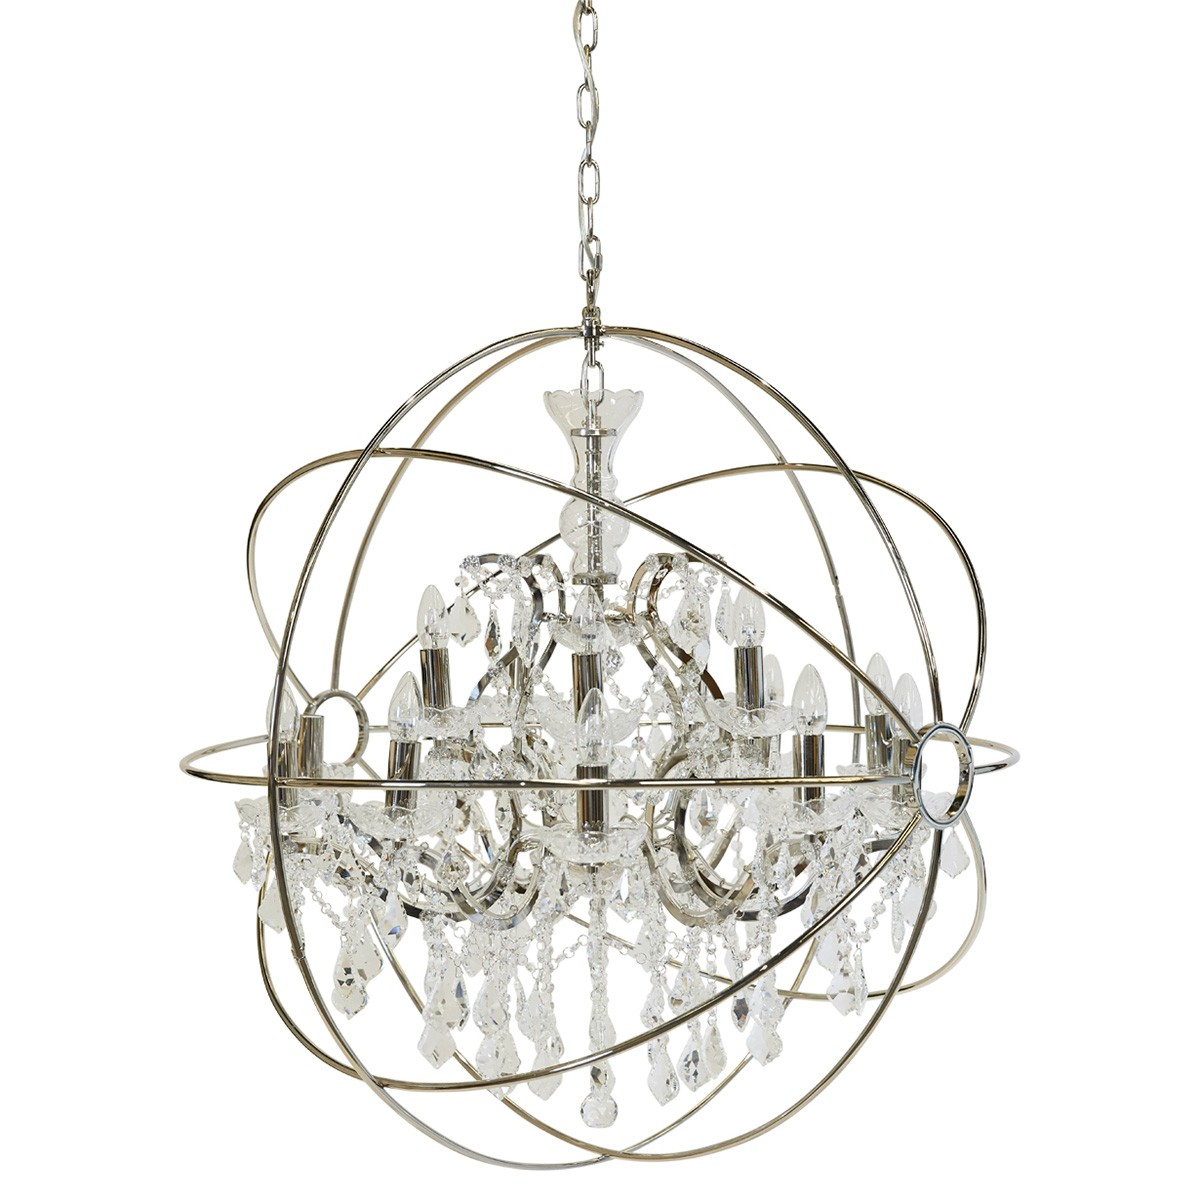 Oscar Iron & Glass Chandelier, 15 Arm, Nickel